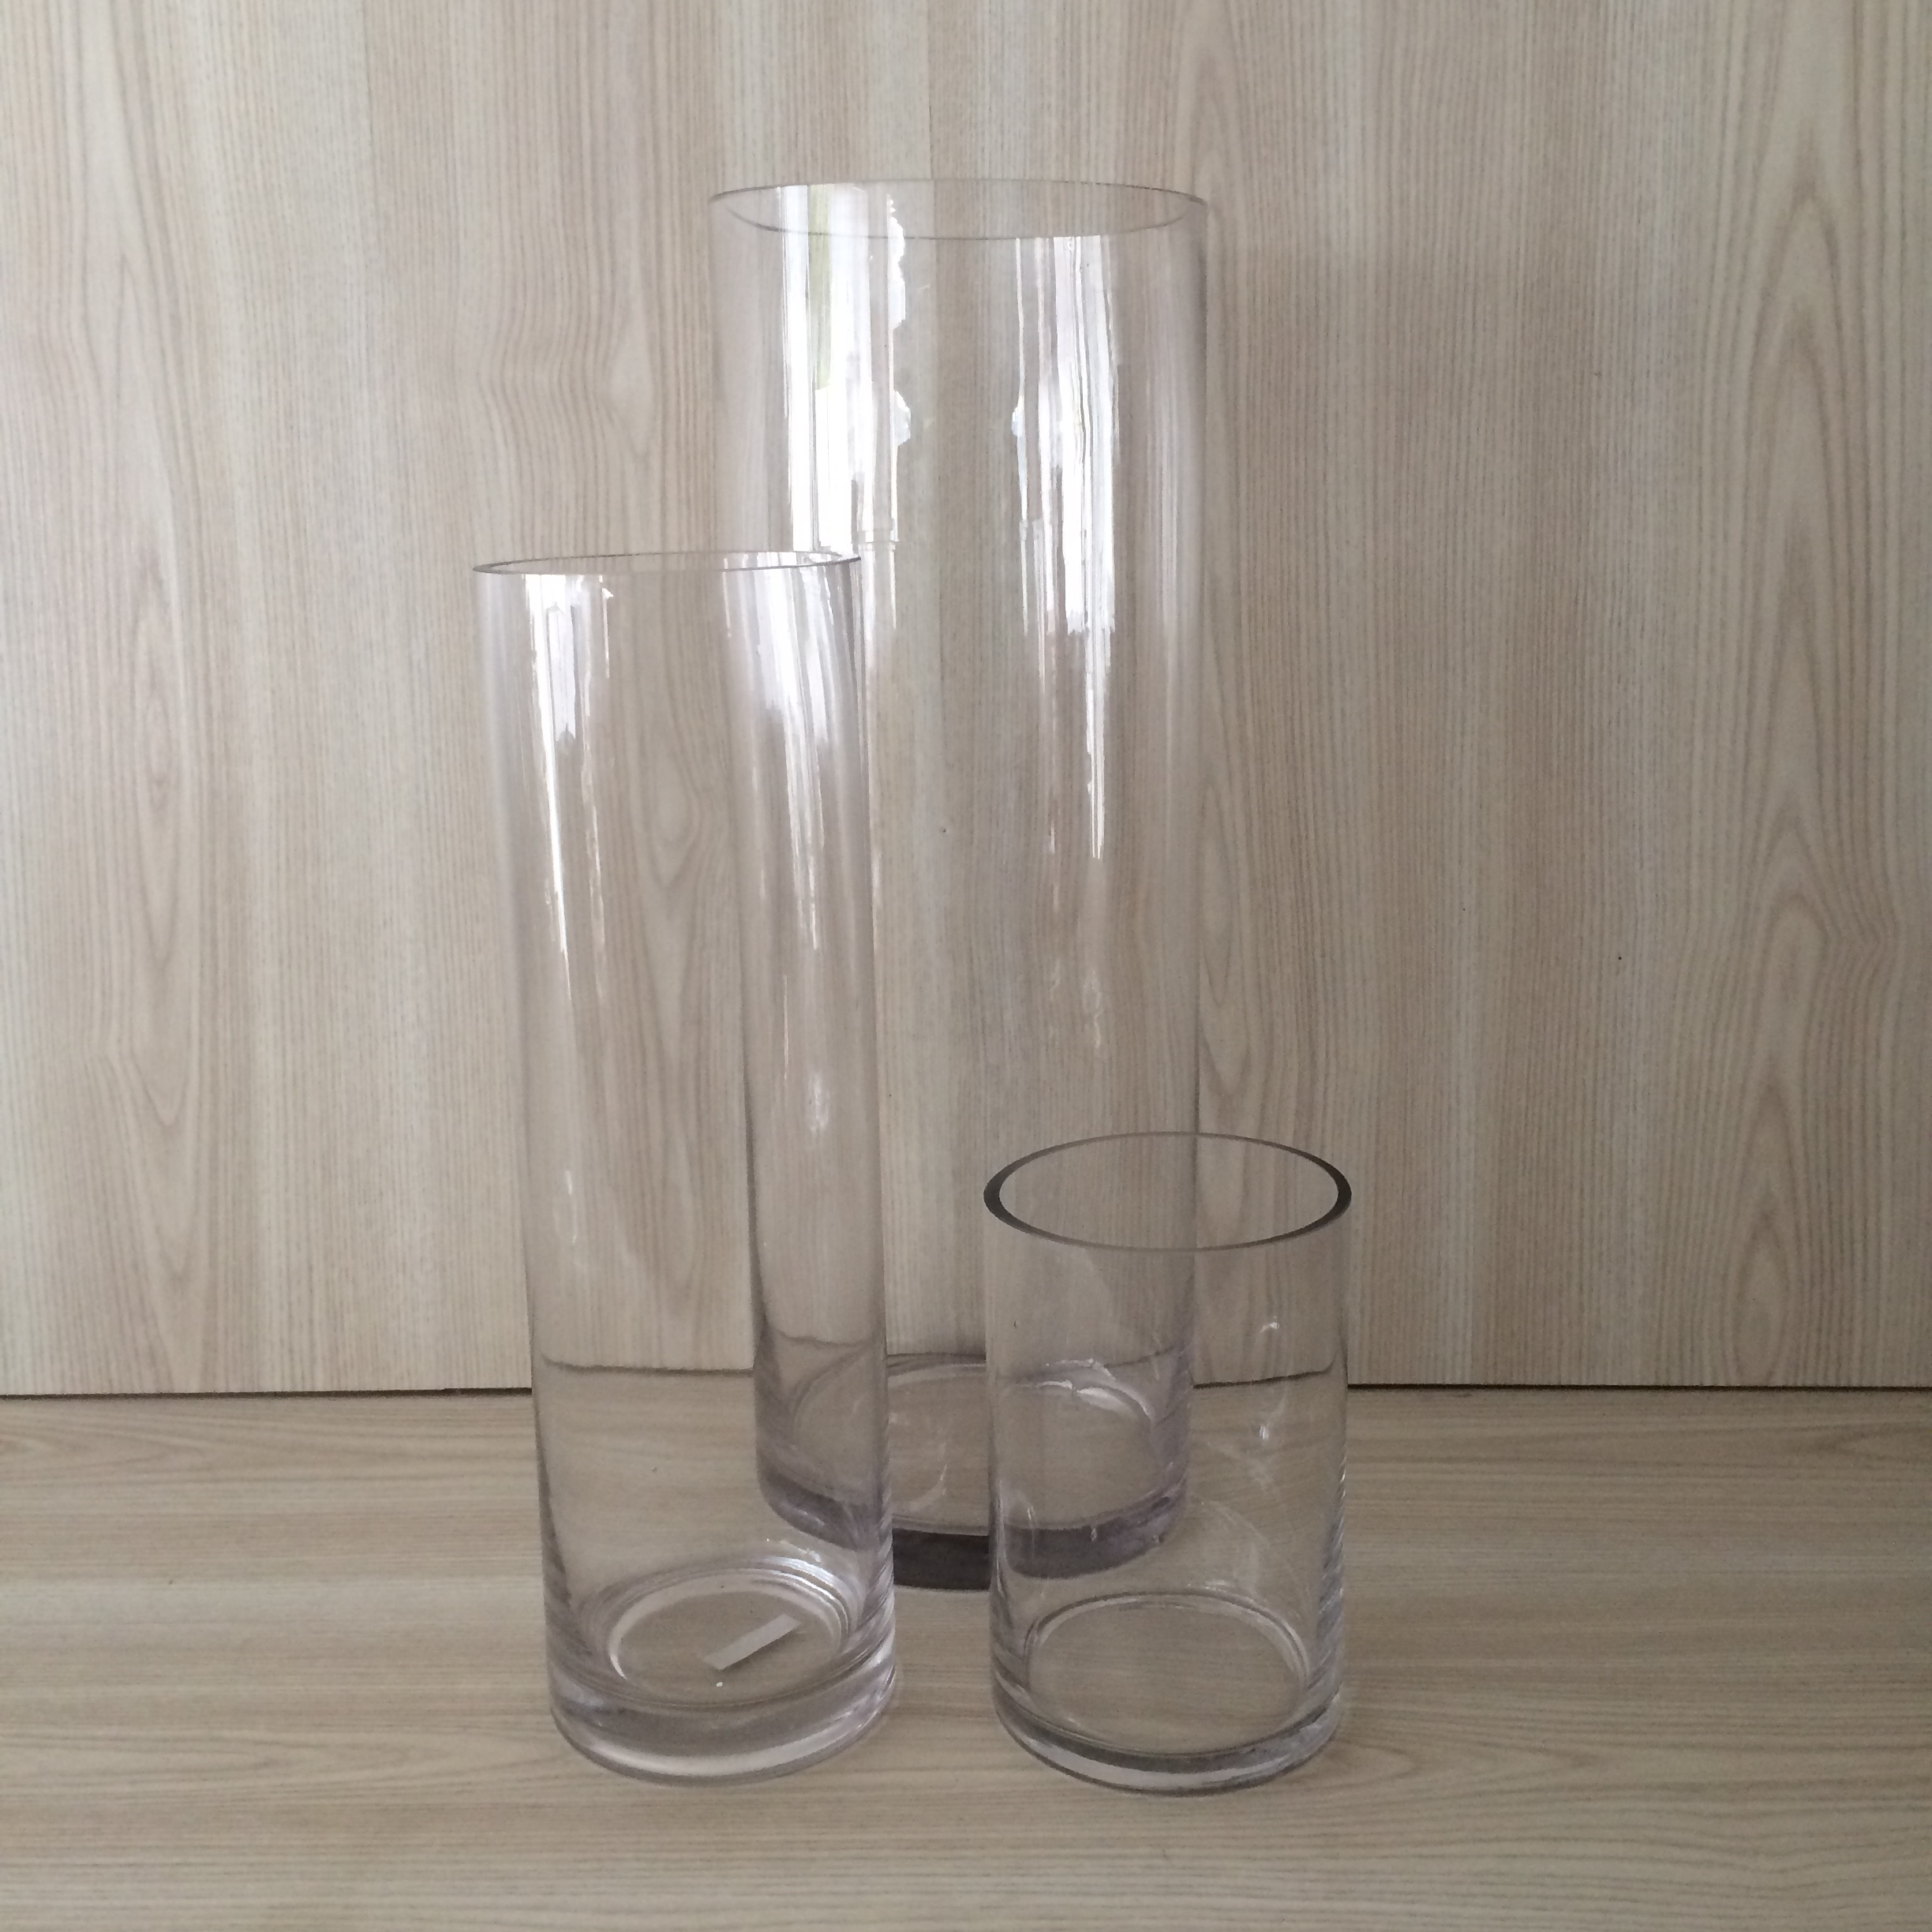 vase hire vases glass cylinder cor product dsc wonderful x d blooming home